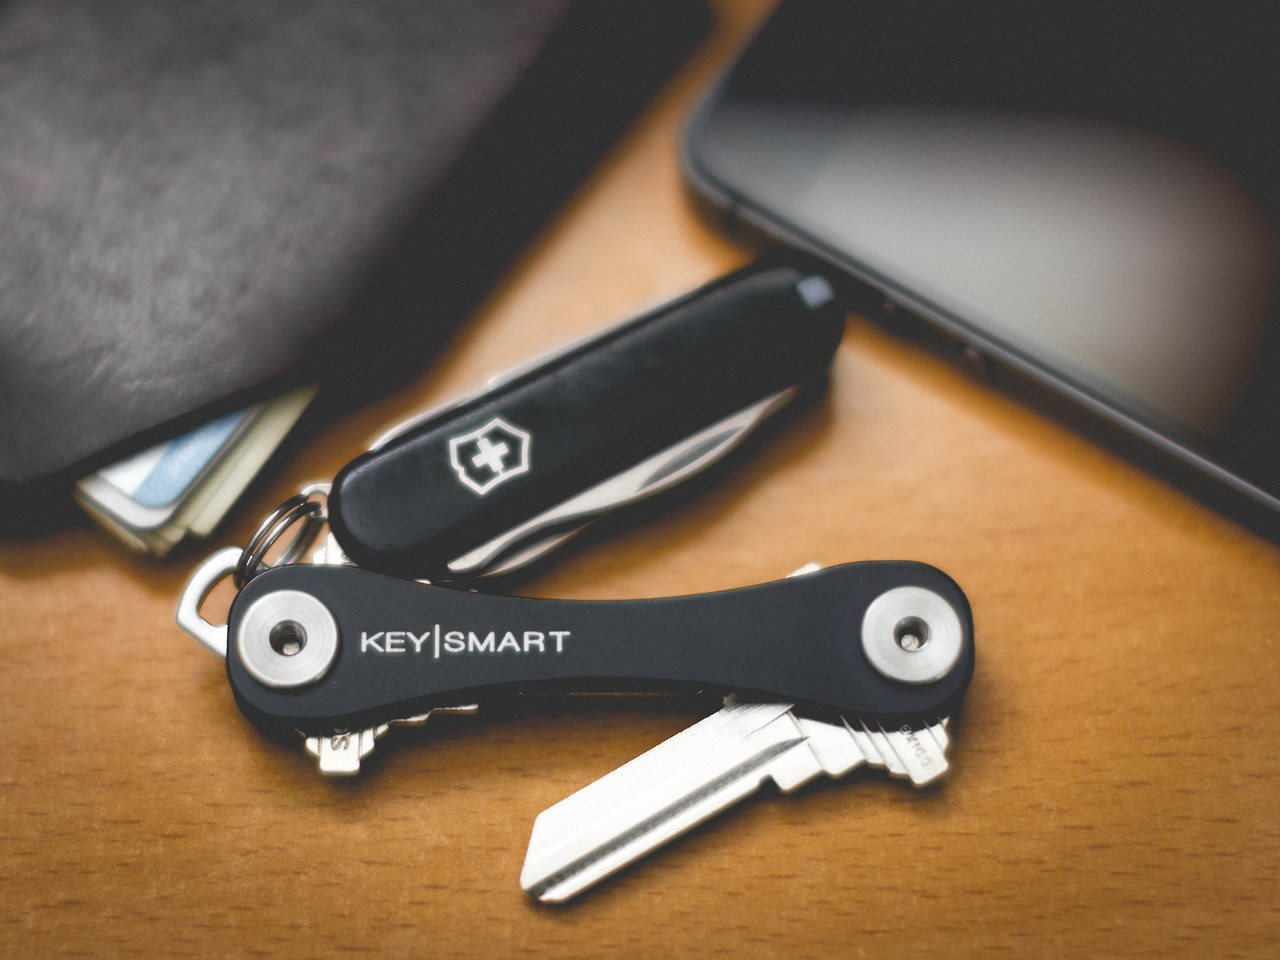 Buy Authentic Keysmart Deals for only S$23.9 instead of S$35.5